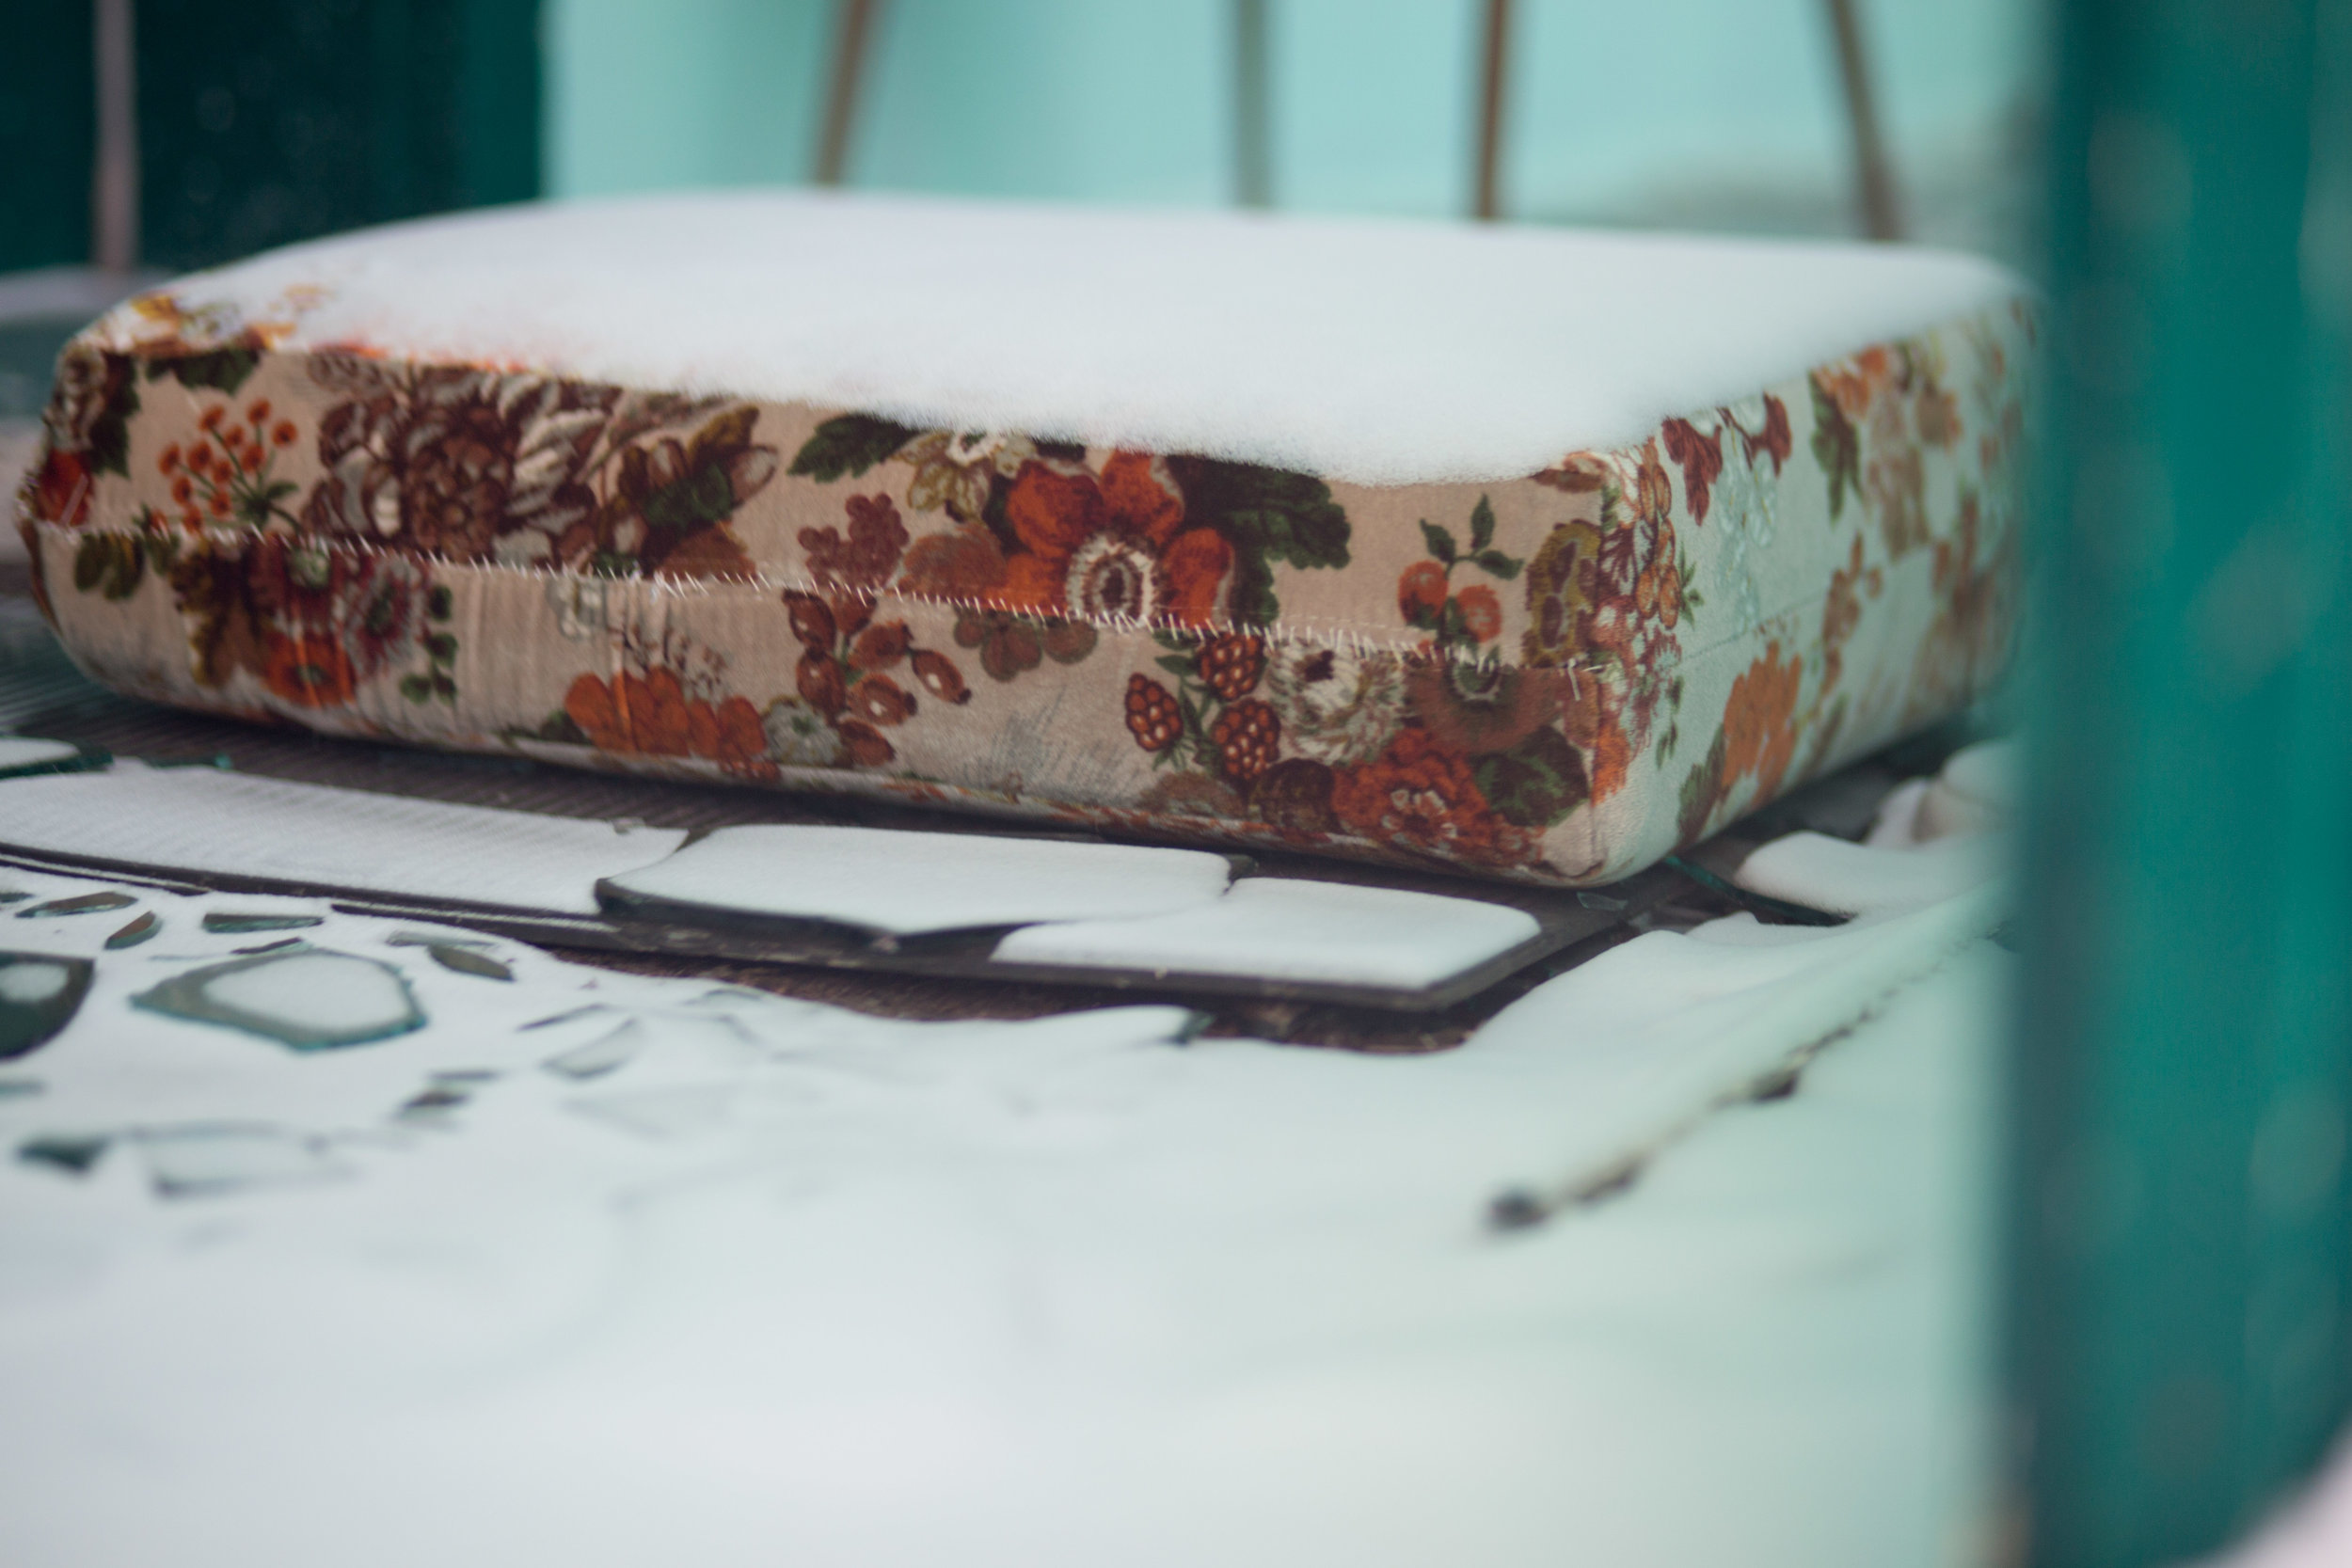 more floral patterns, like a couch we had when I was very young.